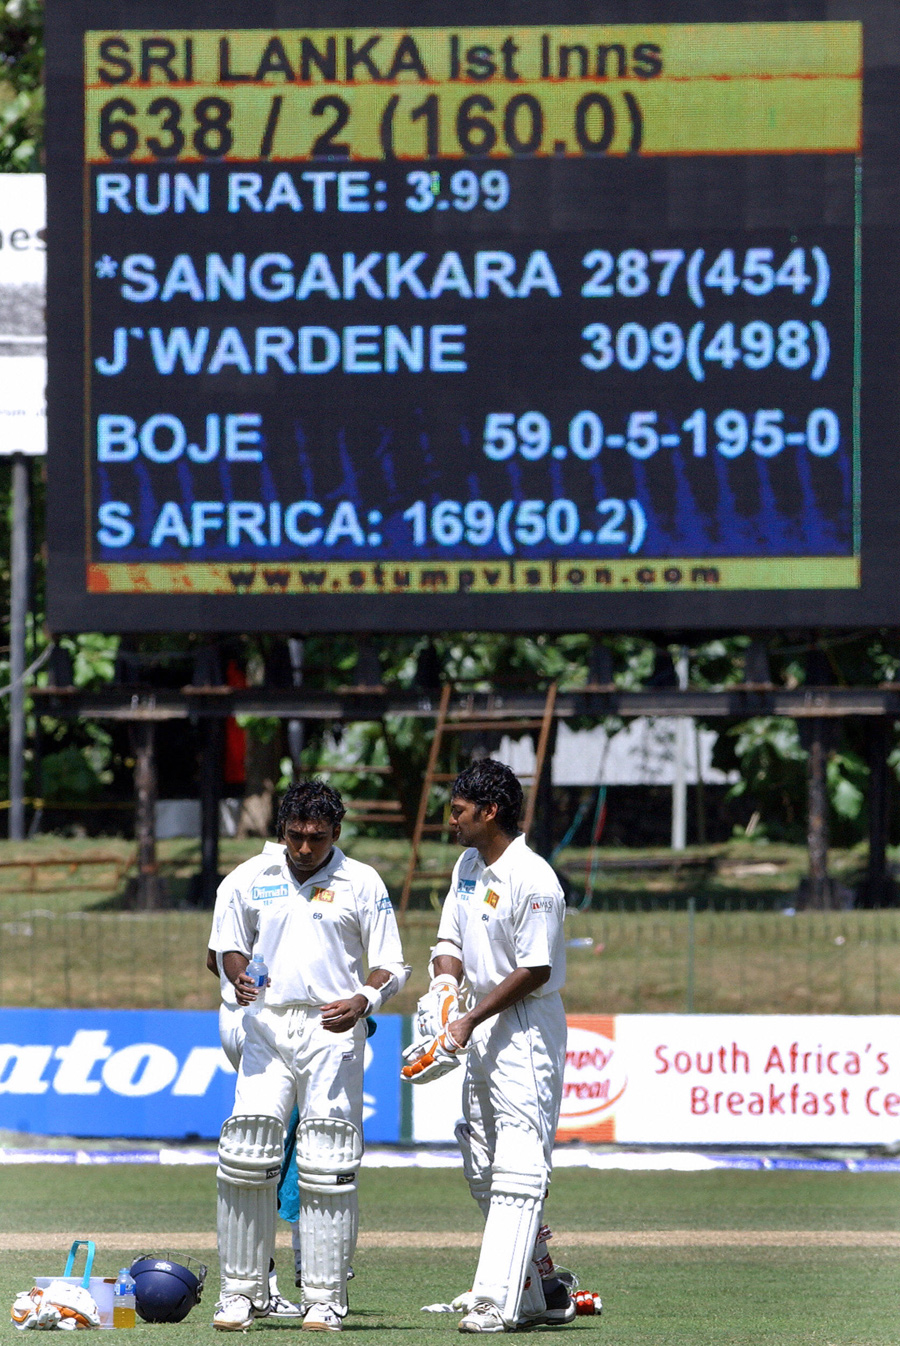 The SSC was the venue for the biggest partnership in Test cricket: 624 between Mahela Jayawardene and Kumar Sangakkara